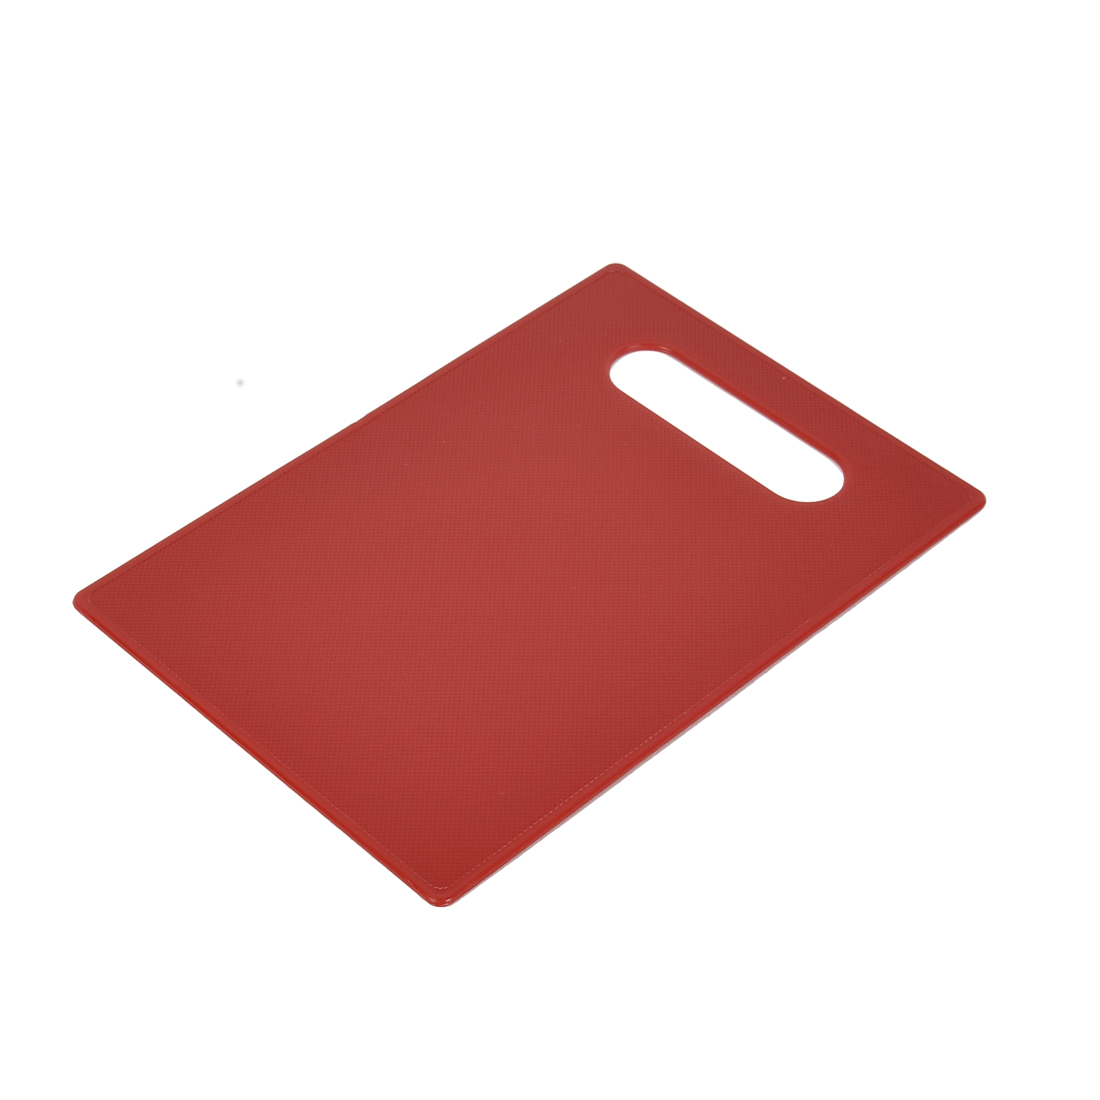 Kitchen Plastic Nonslip Heat Resistant Chopping Cutting Slicing Board Red